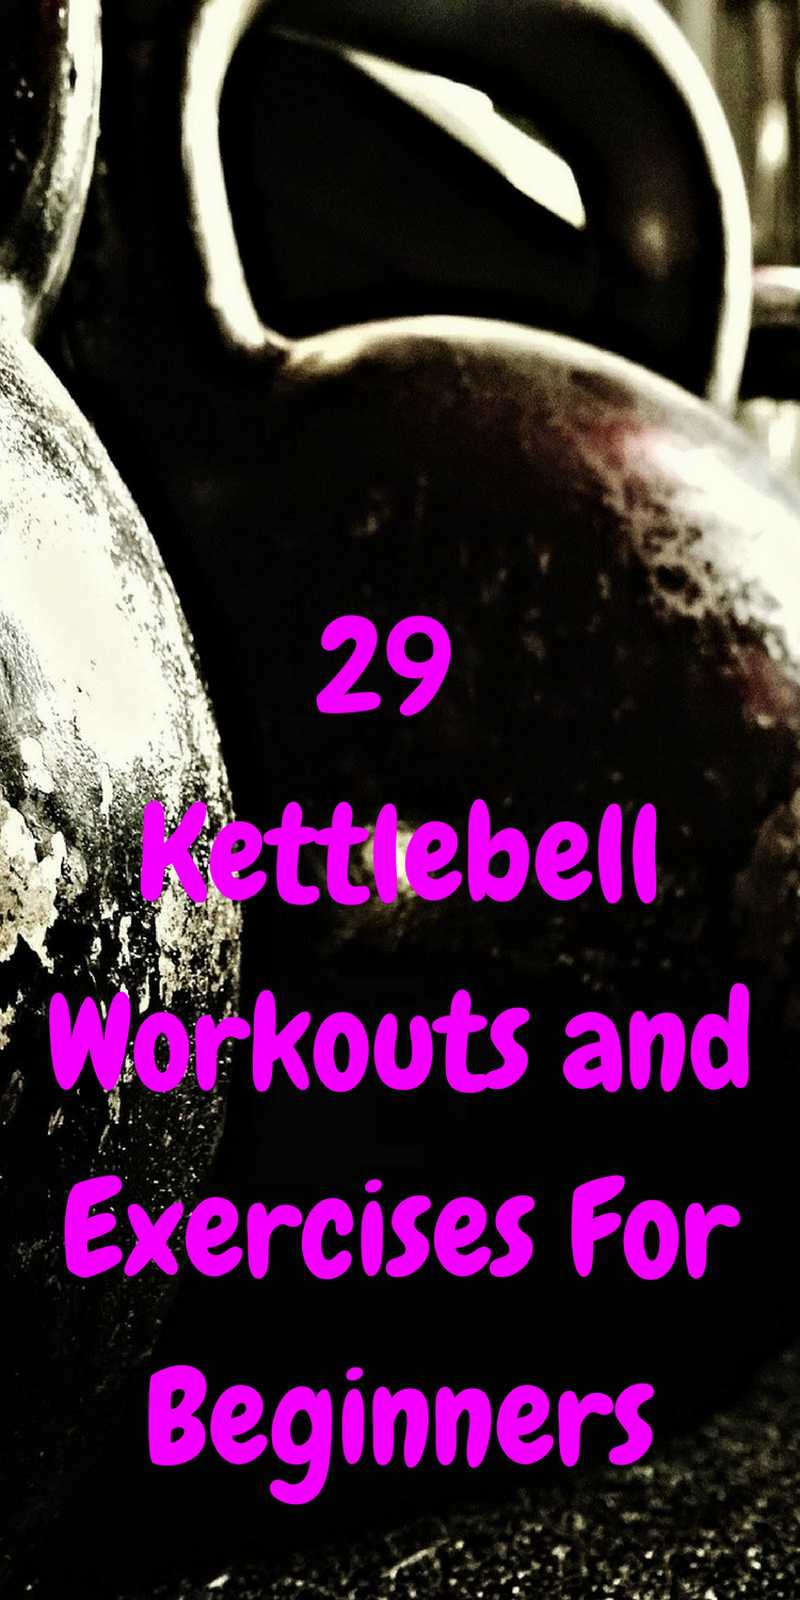 29 Kettlebell Workouts and Exercises For Beginners | Excercise  | Excercise Motivation | Excercise Ball Workout | Excercise For Beginners | Excercise Motivation for Women | For Beginners At Home | For Beginners Gym | For Beginners Belly | For Beginners Over 50 | Excercise Ball Workout For Men | Excercise Ball Workout For Beginners | Excercise Ball Workout Muffintop | Muffintop Exercise | Muffintop Challenge | Muffin top Workout | ARoadtoTravel.com